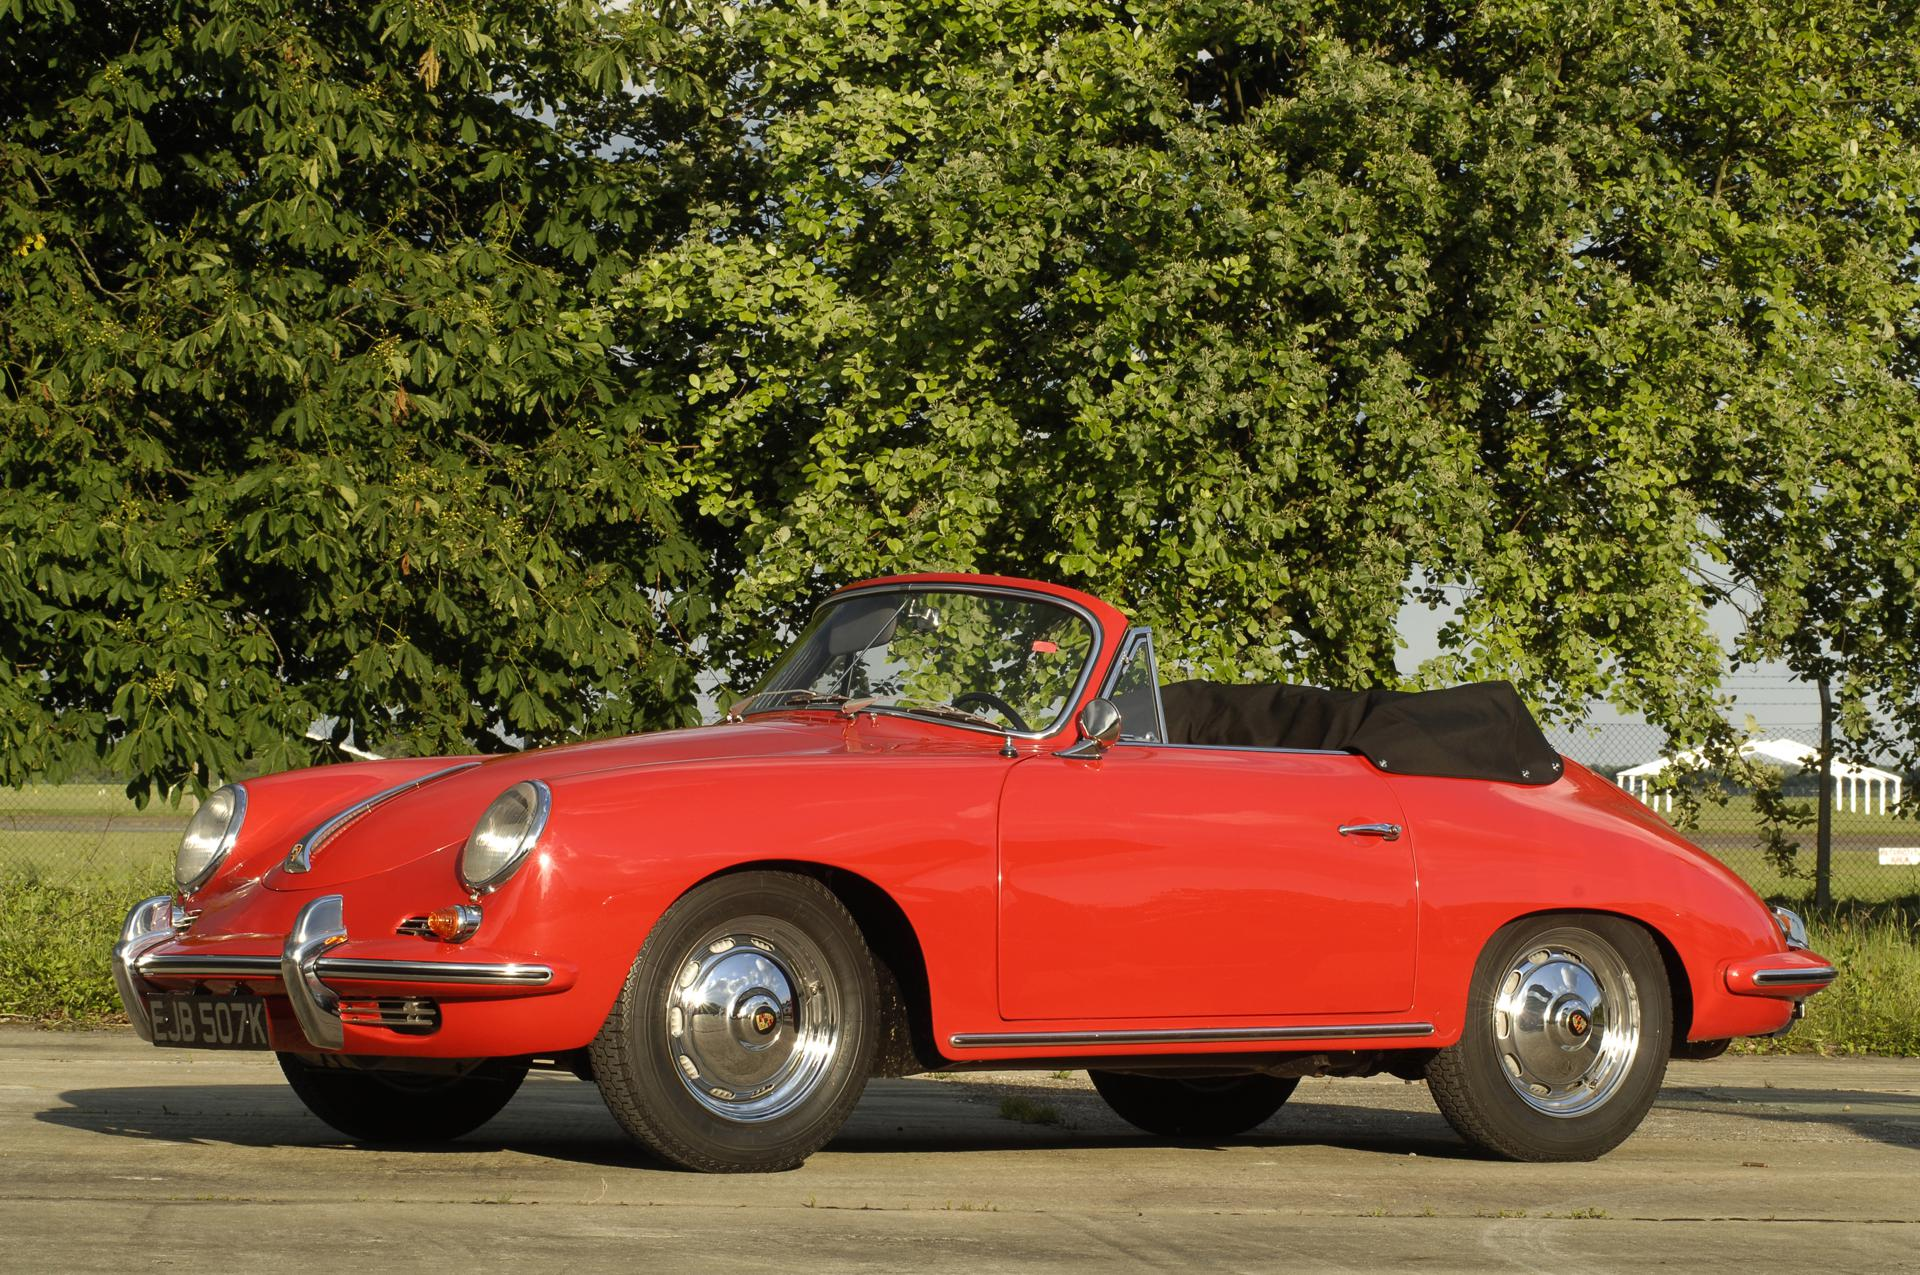 Wheels and Deals: A 1960 Porsche 356B 1600 Cabriolet in excellent condition costs upwards of $80,000.